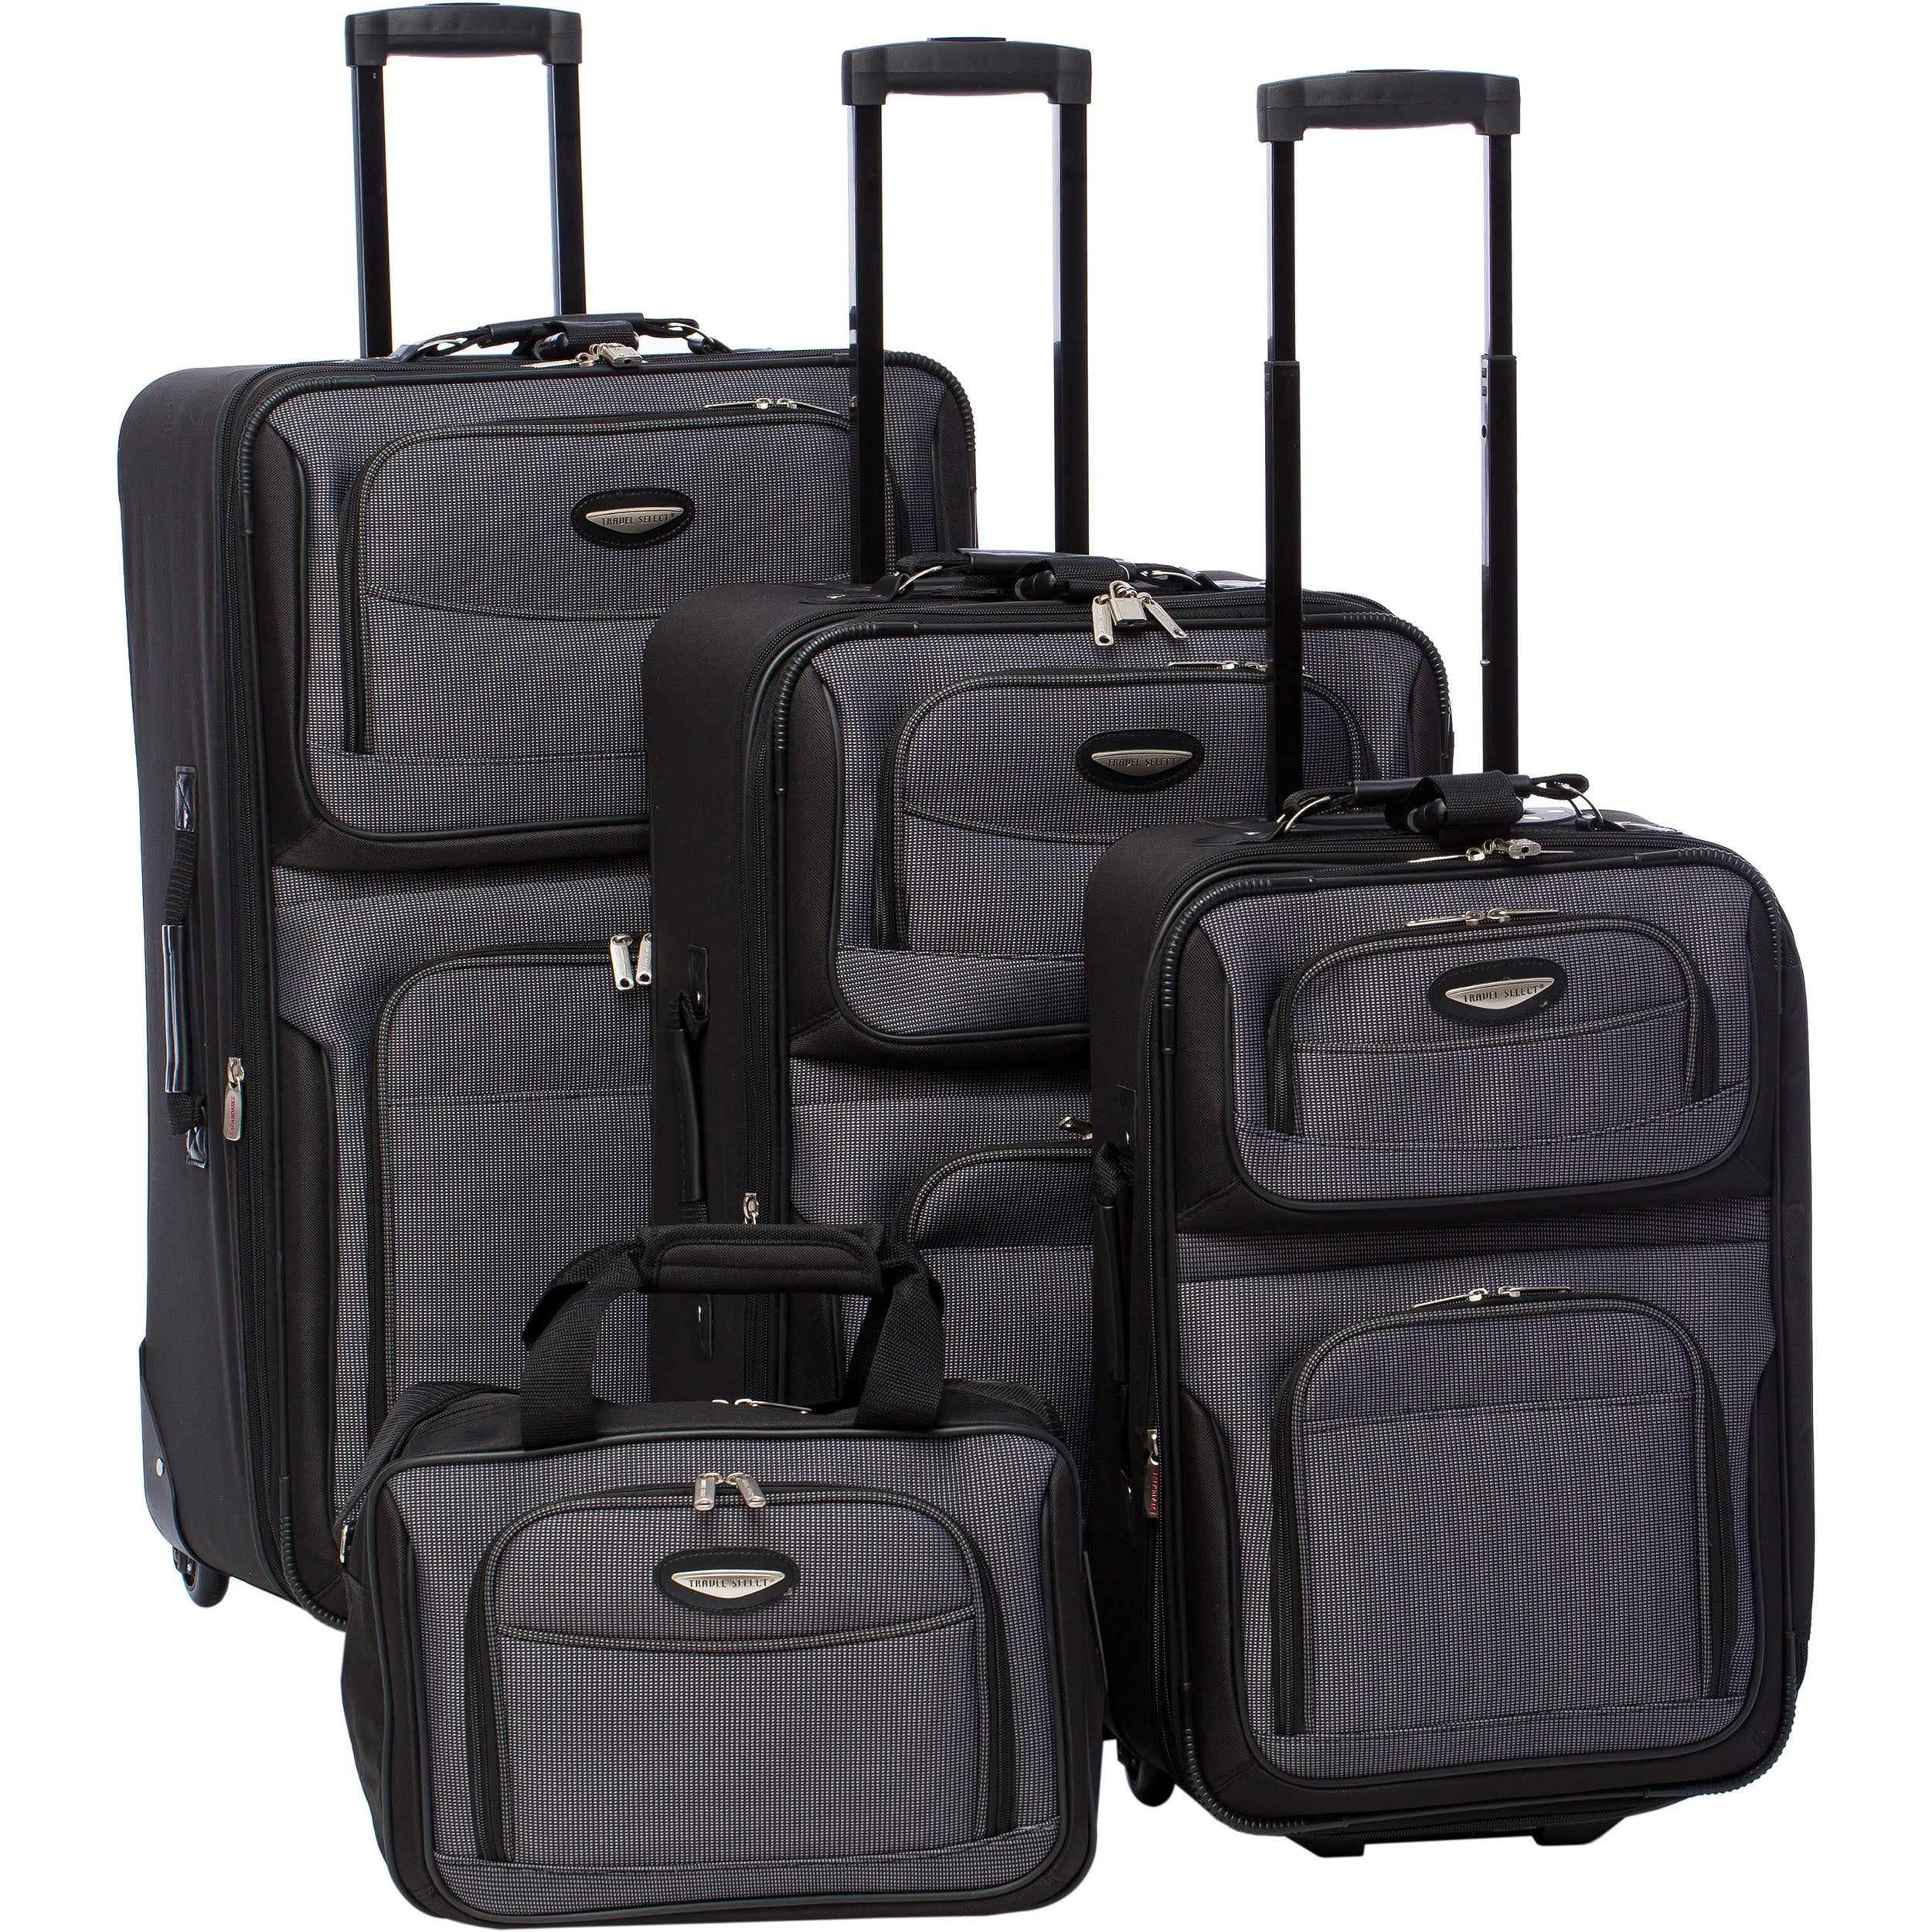 a8d20f80e8c4 Shop Travel Select by Traveler s Choice Amsterdam 4-piece Luggage Set - Free  Shipping Today - Overstock - 711428